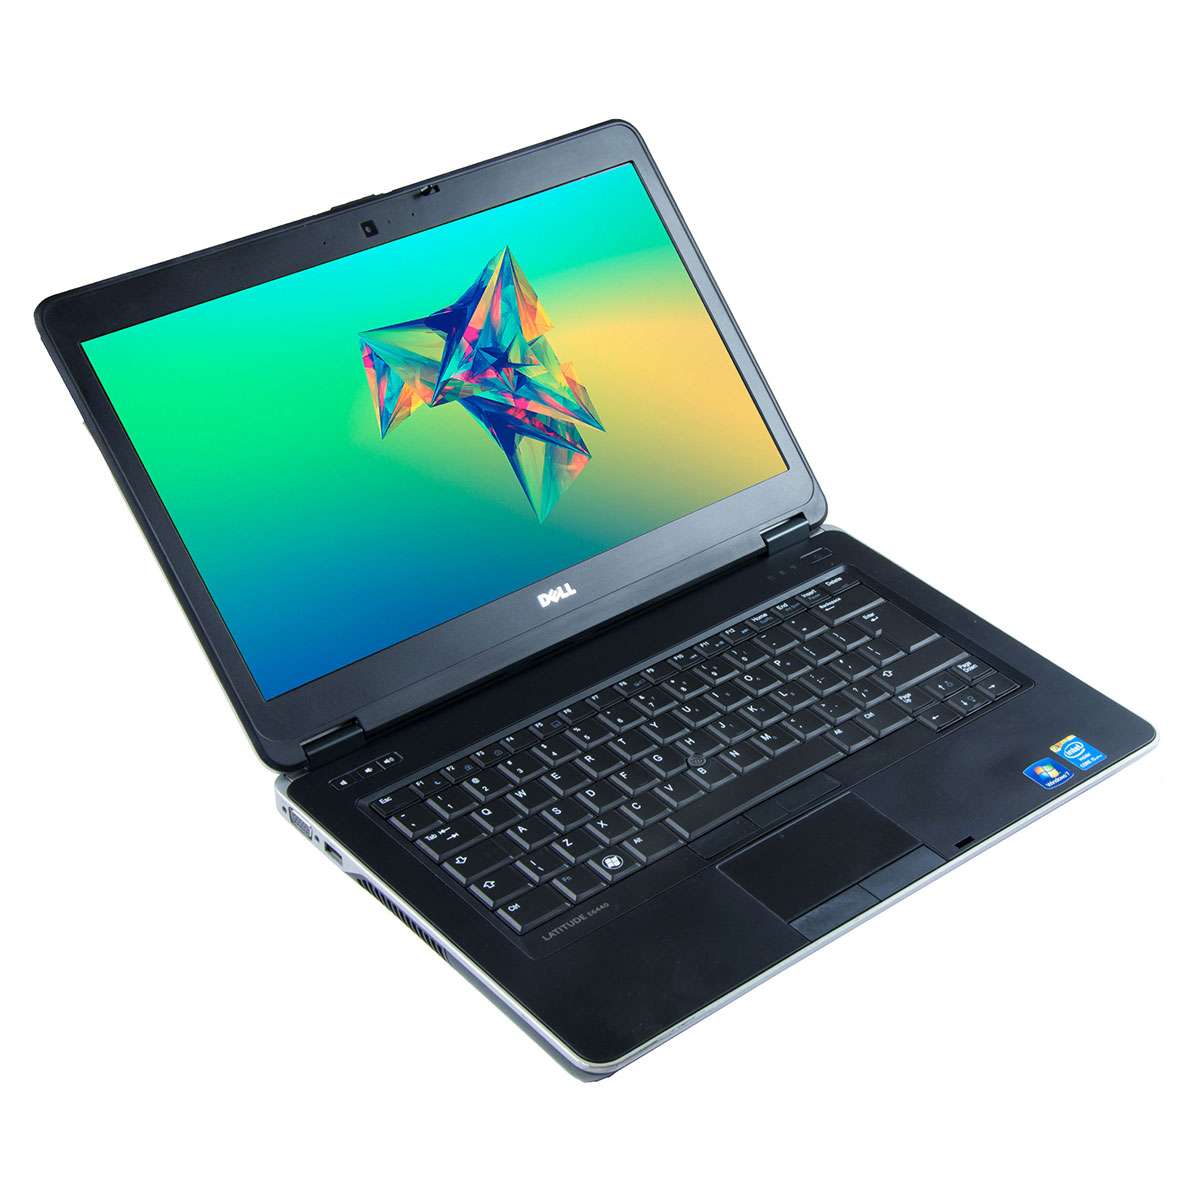 Dell Latitude E6440 14 Led Backlit Intel Core I5-4